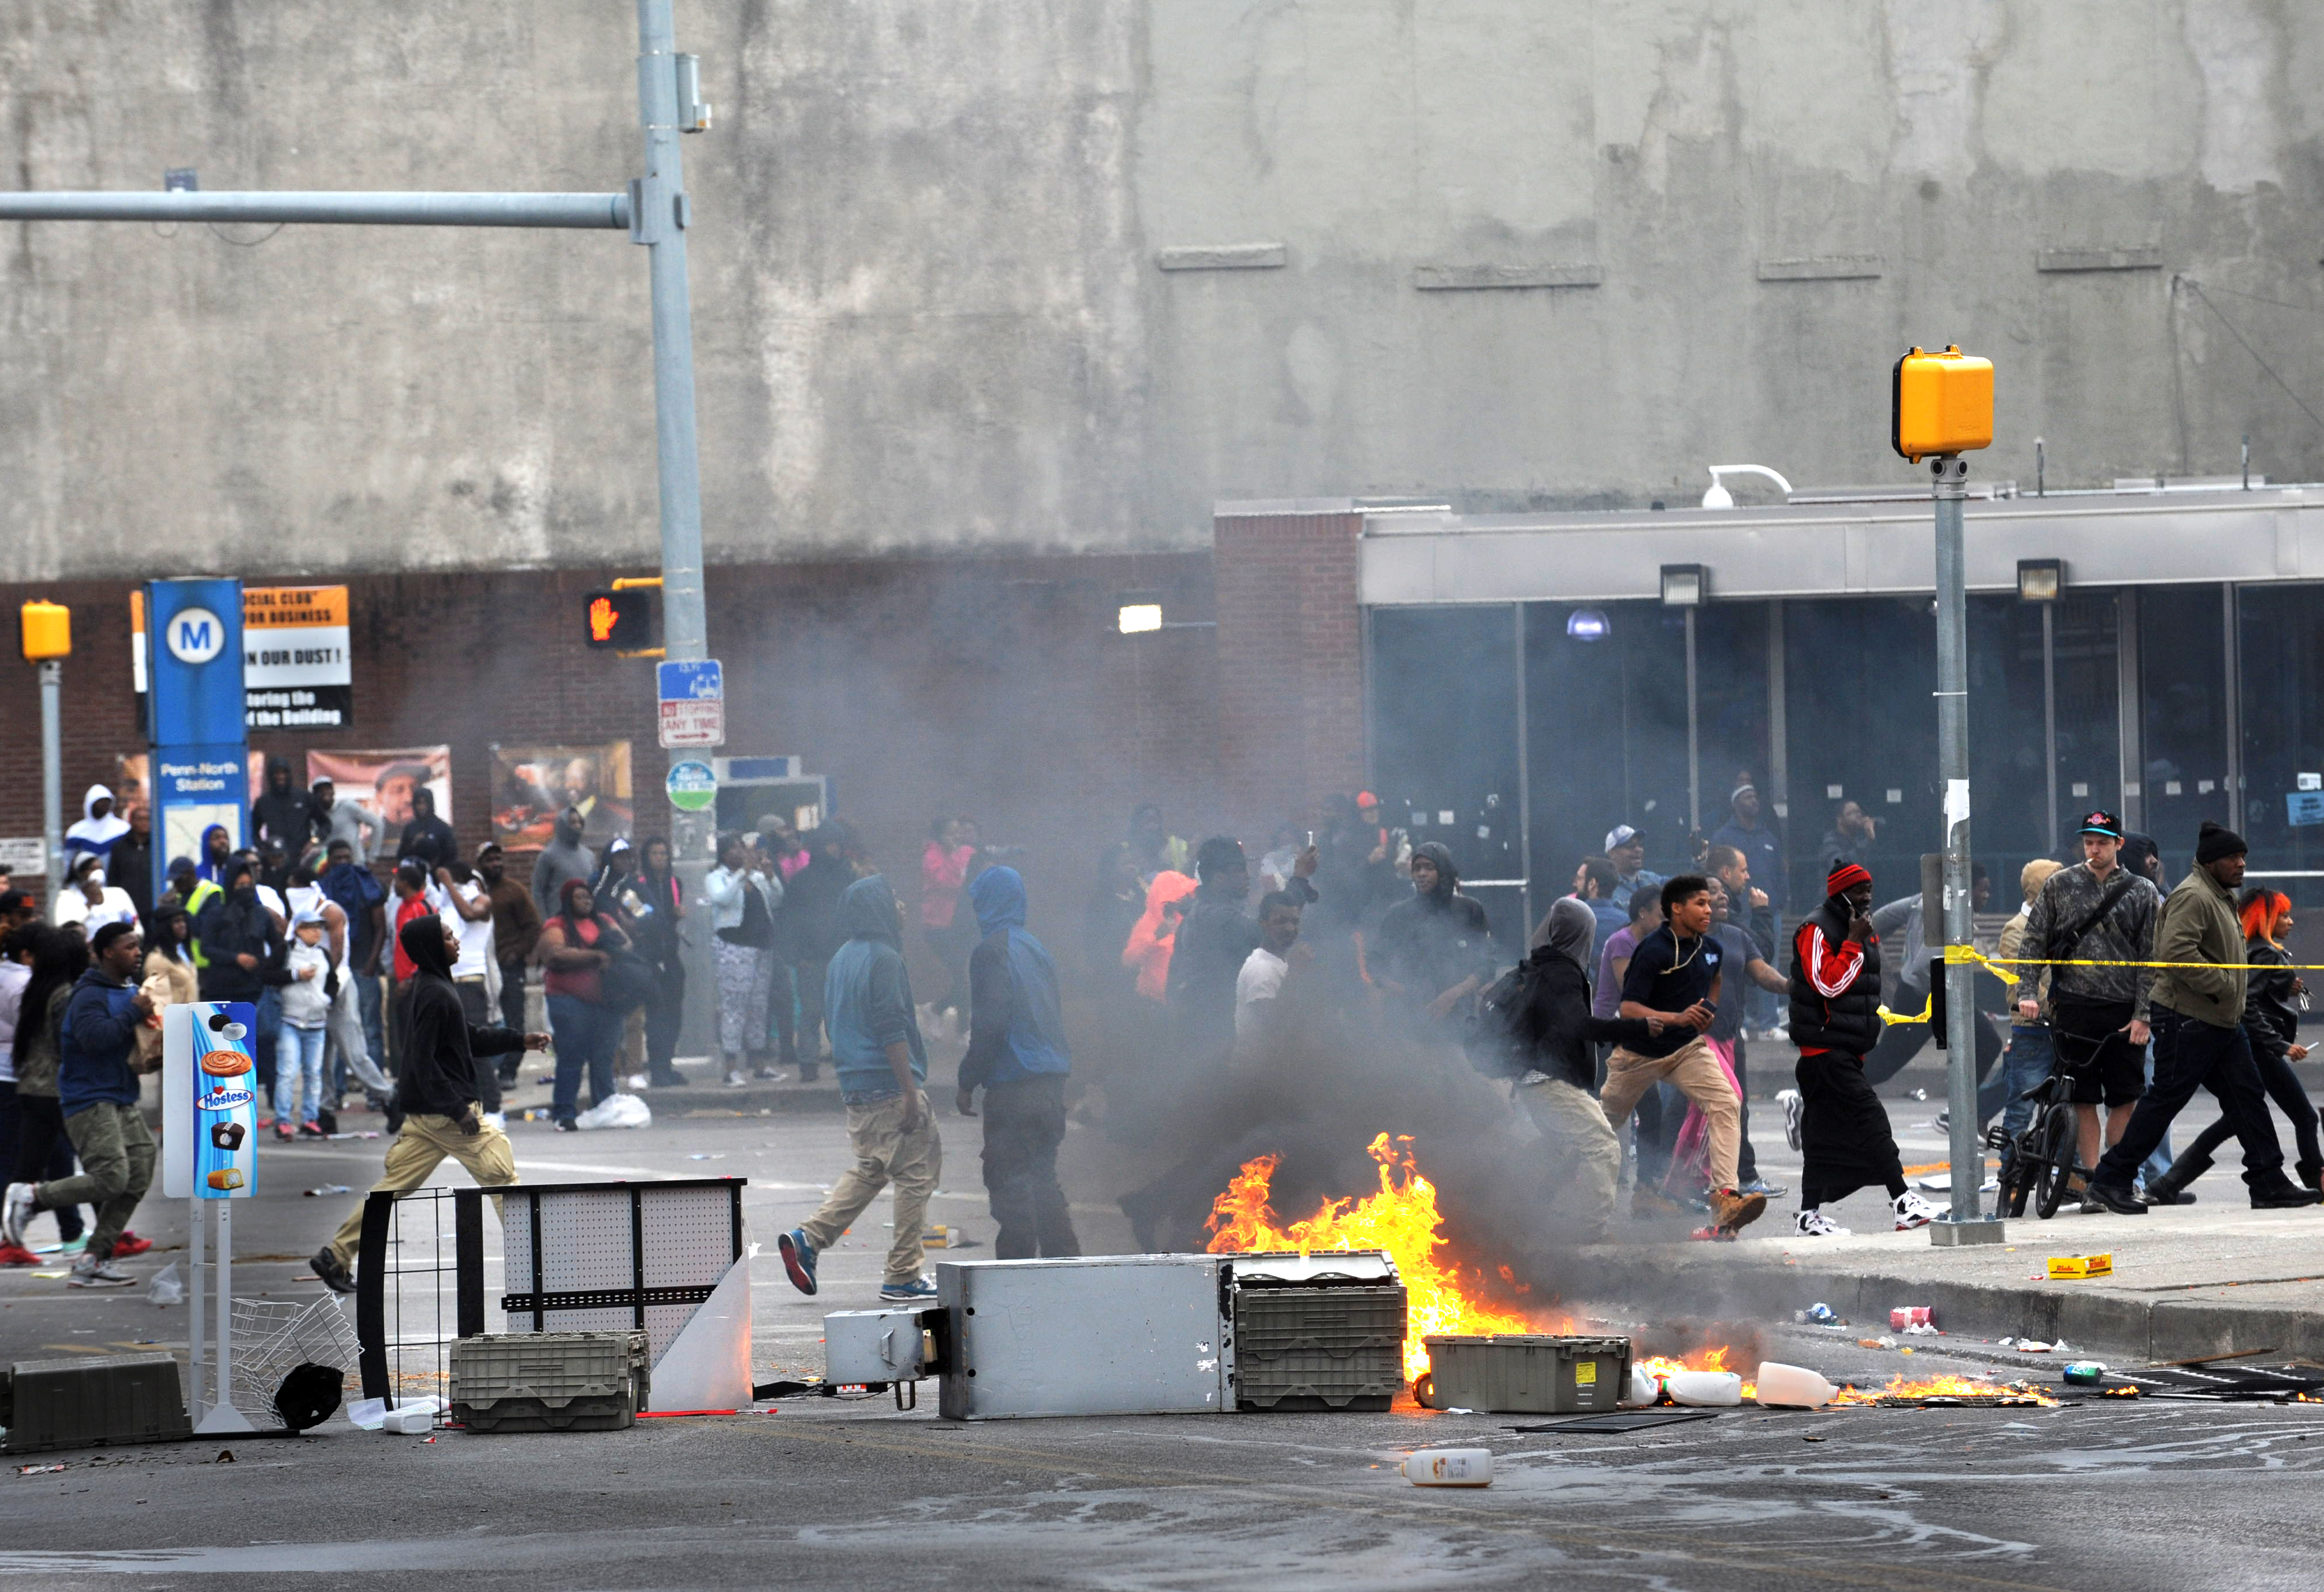 Surveillance video offers closer look at riot outbreak in Baltimore